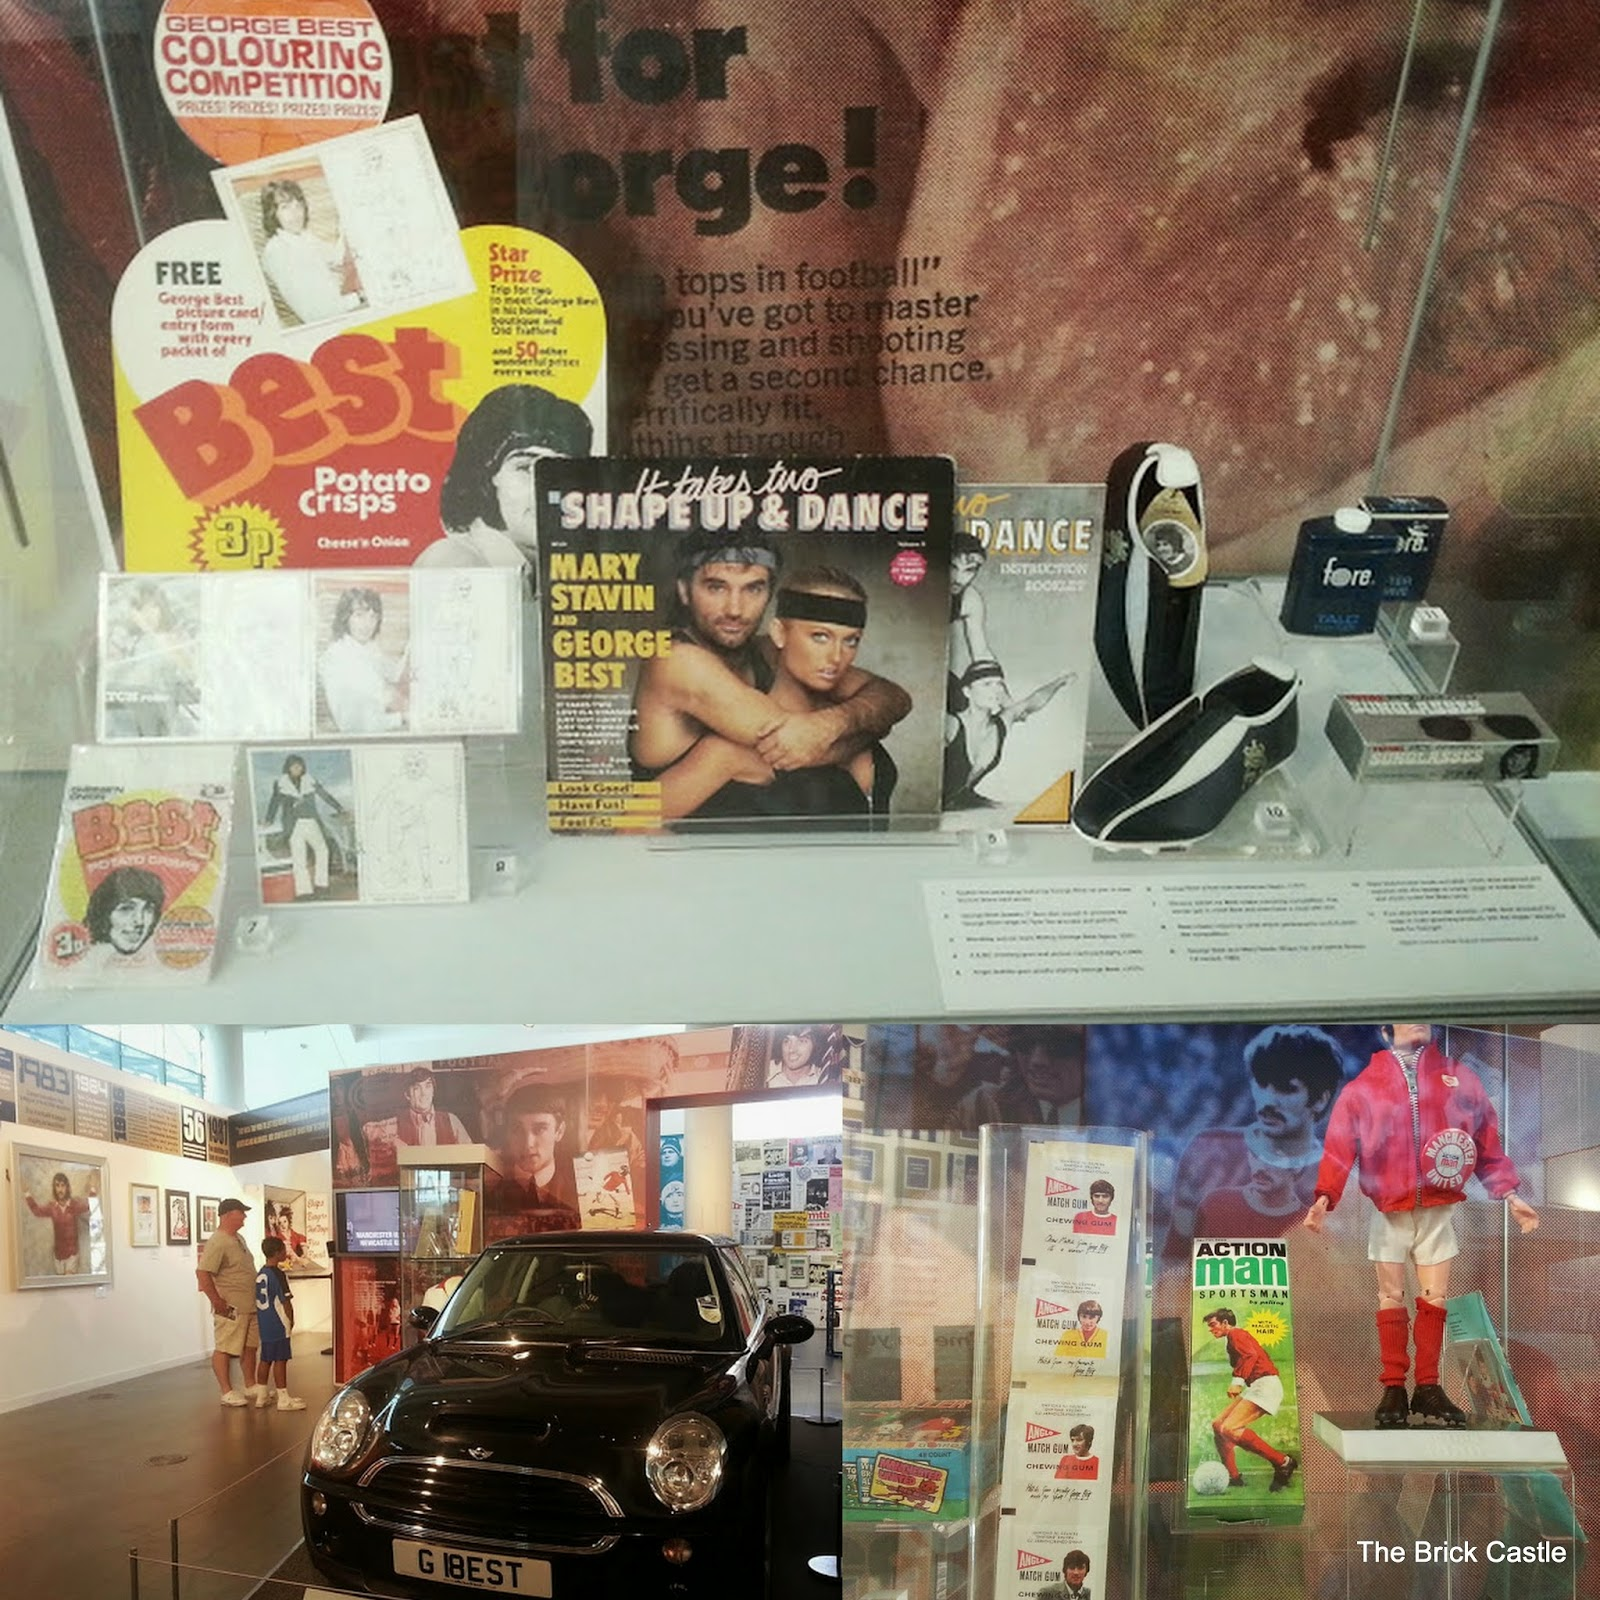 The National Football Museum at Urbis, Manchester George Best 1960's Manchester United player memorabilia and car